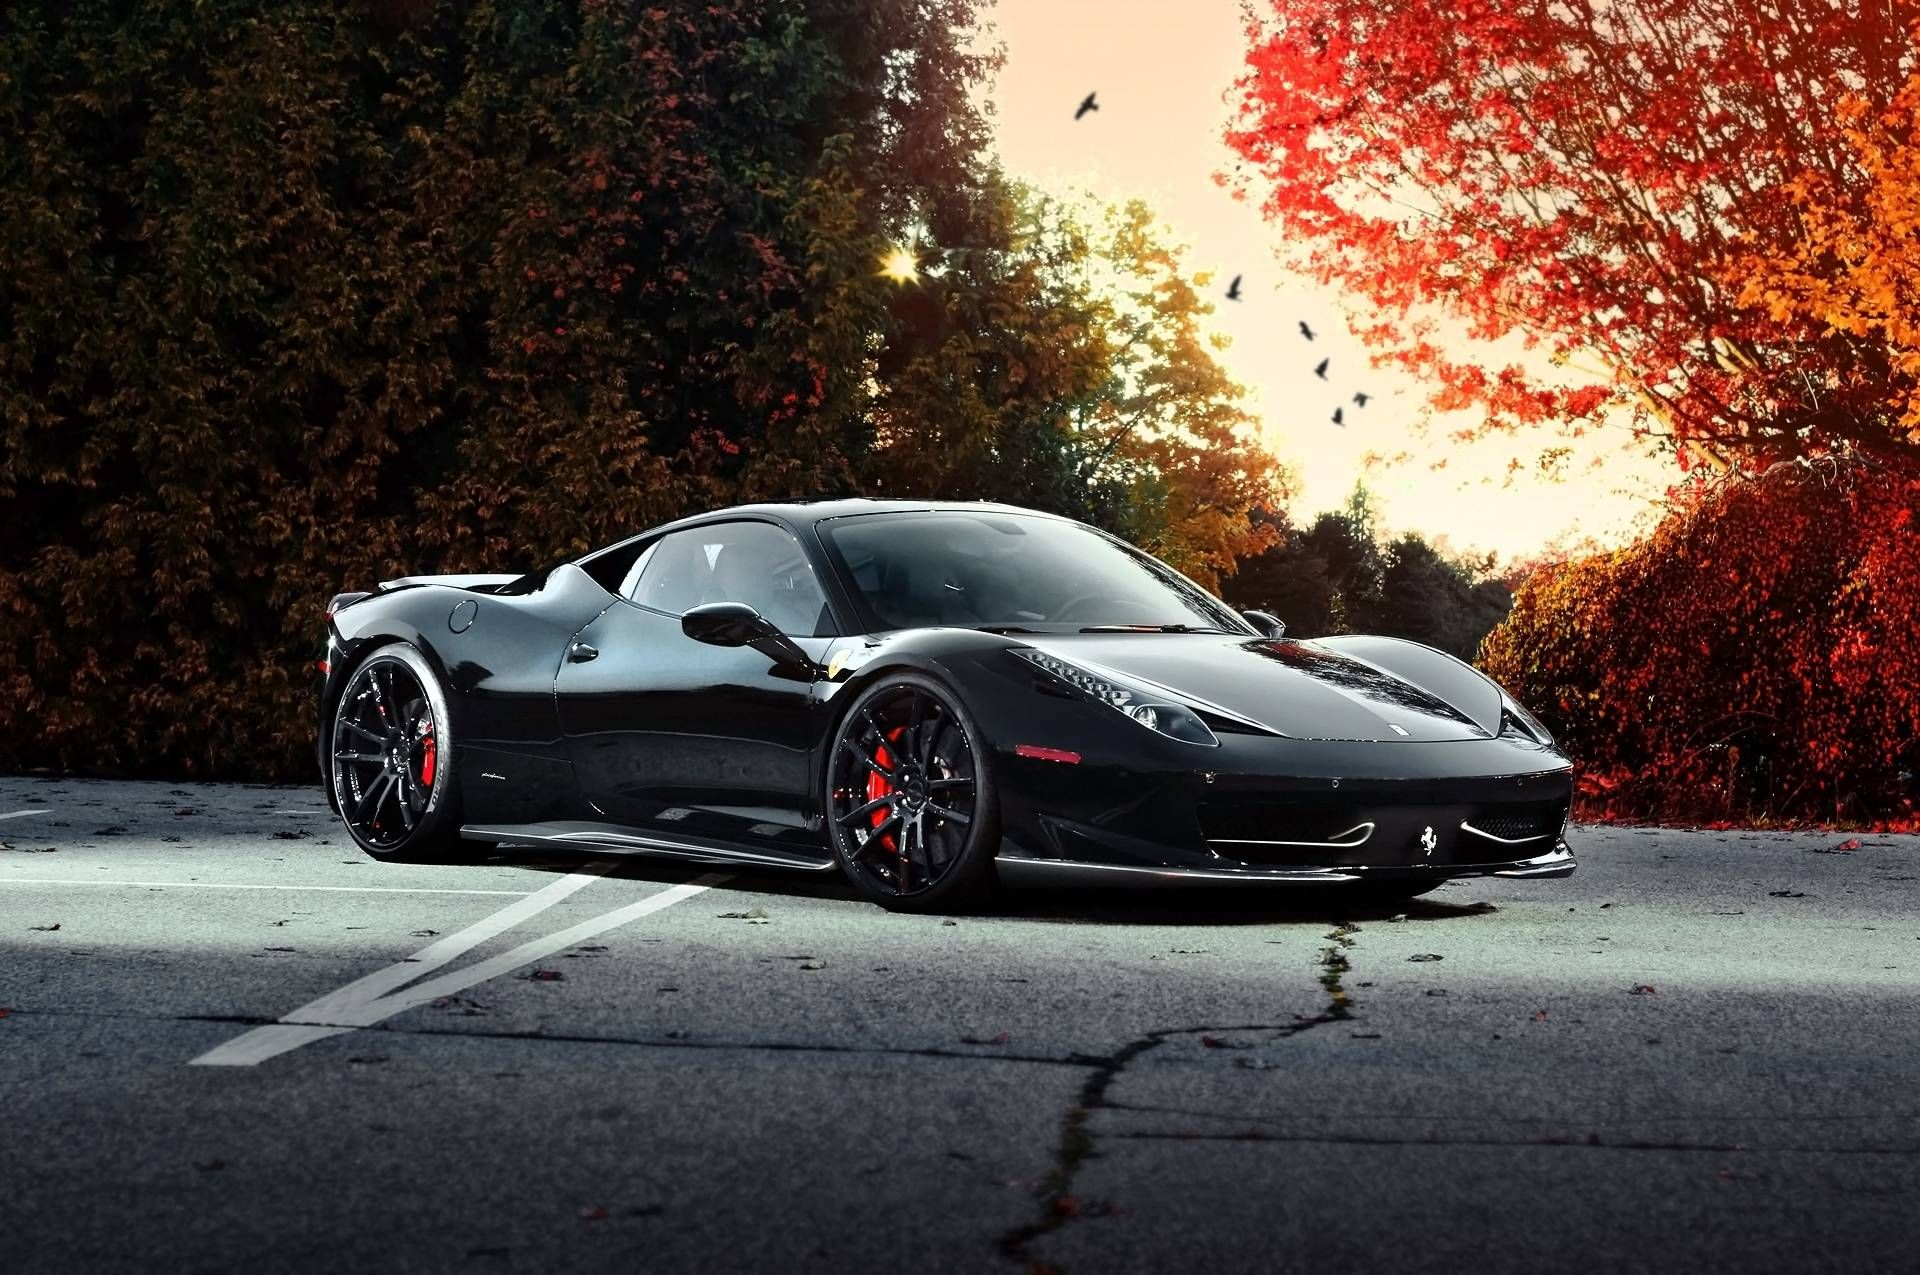 Black Ferrari Wallpaper 1080p Syi Ferrari 458, Car